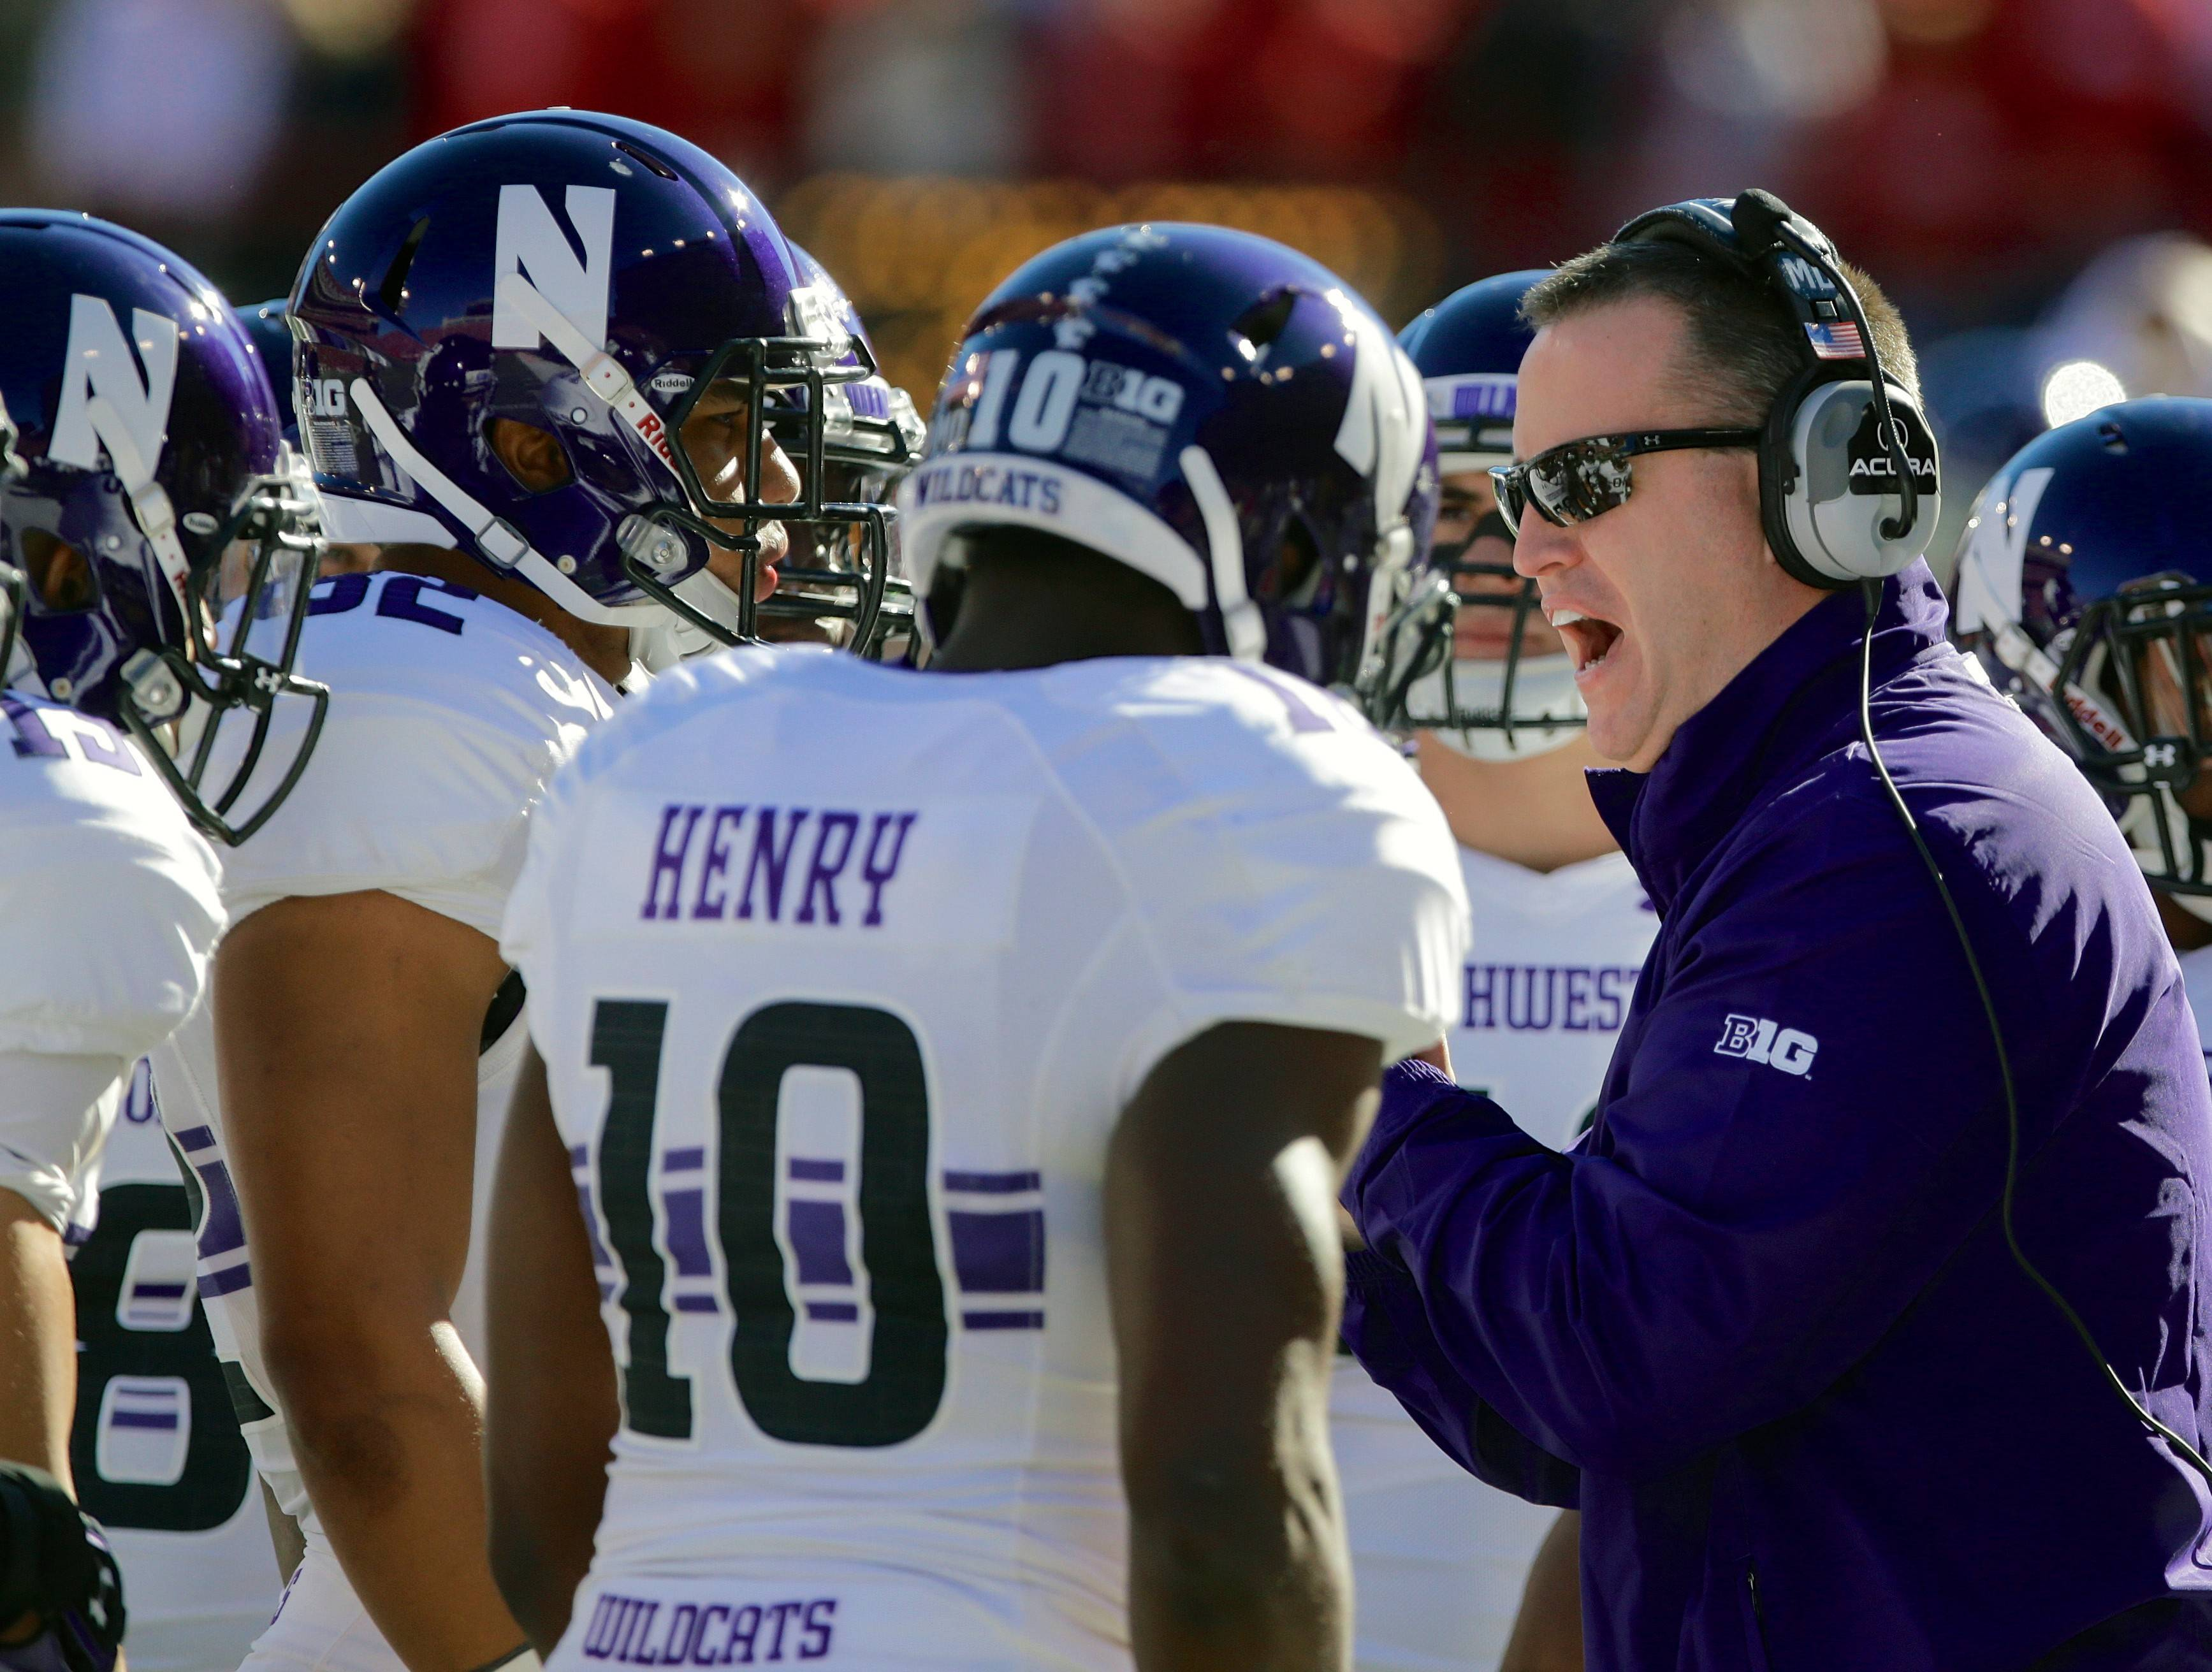 Northwestern head coach Pat Fitzgerald addresses his players in the Nebraska game last fall.